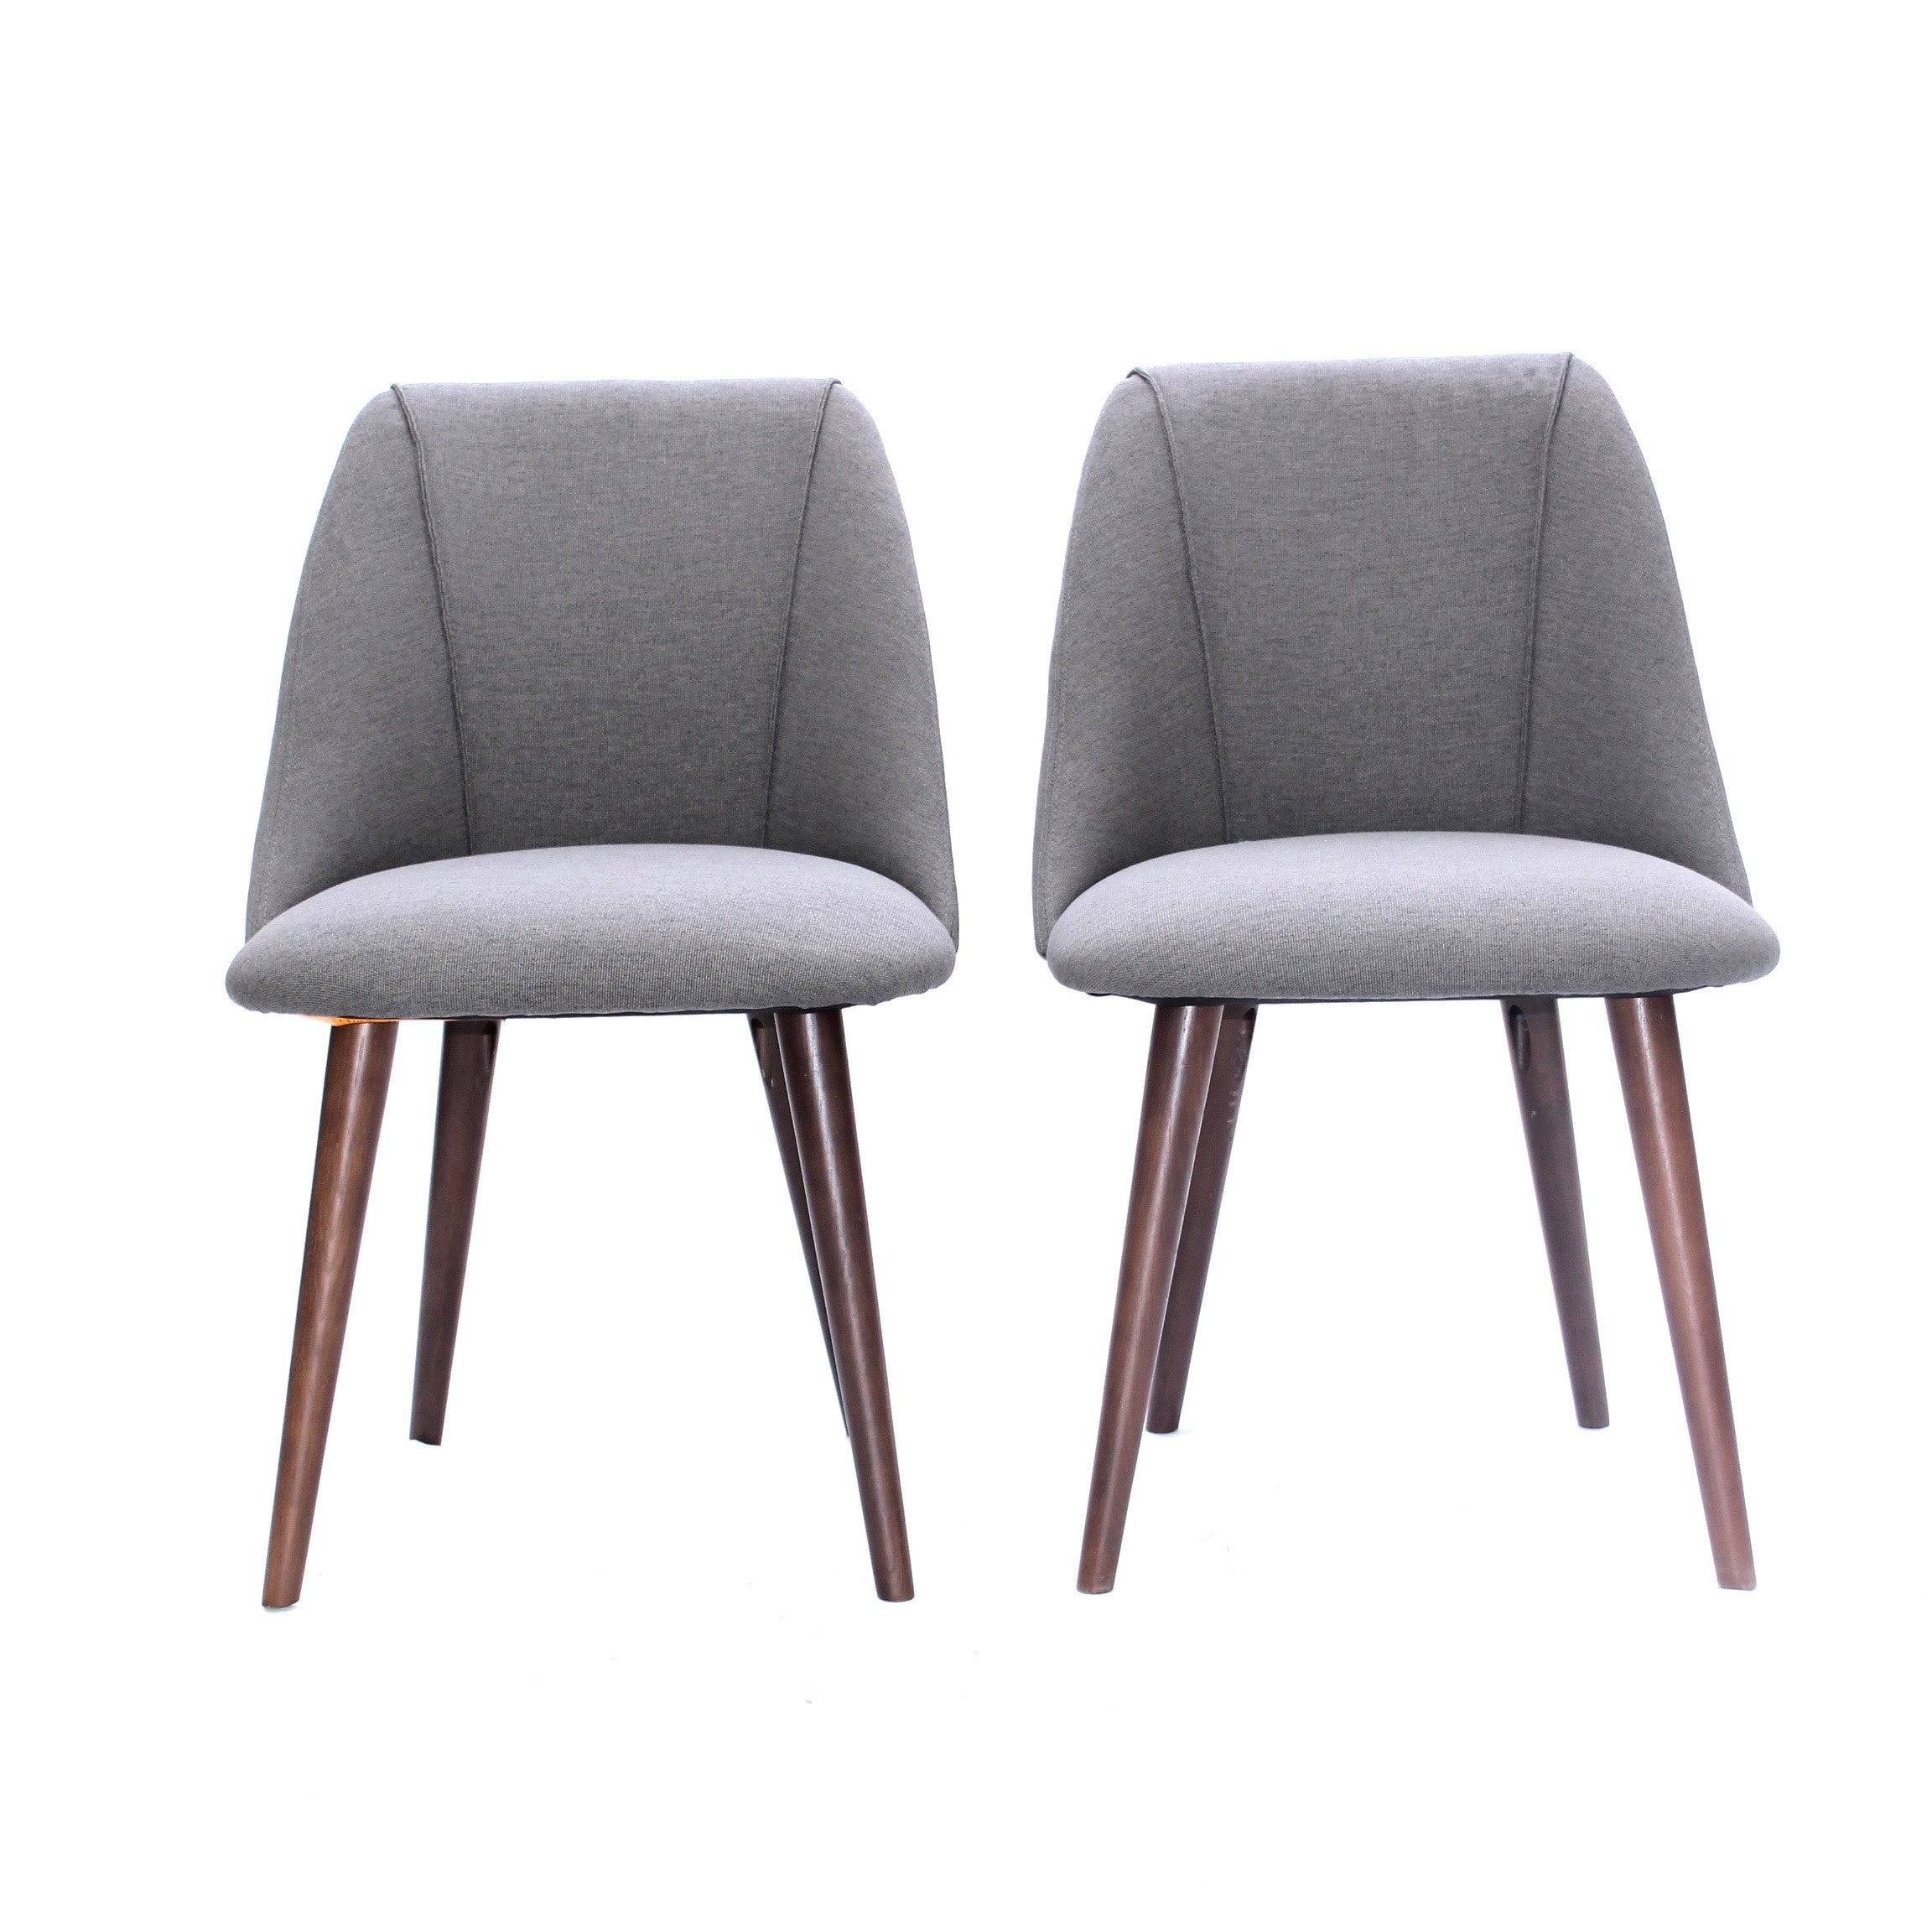 Two Mid-Century Modern Style Accent Chairs, Contemporary